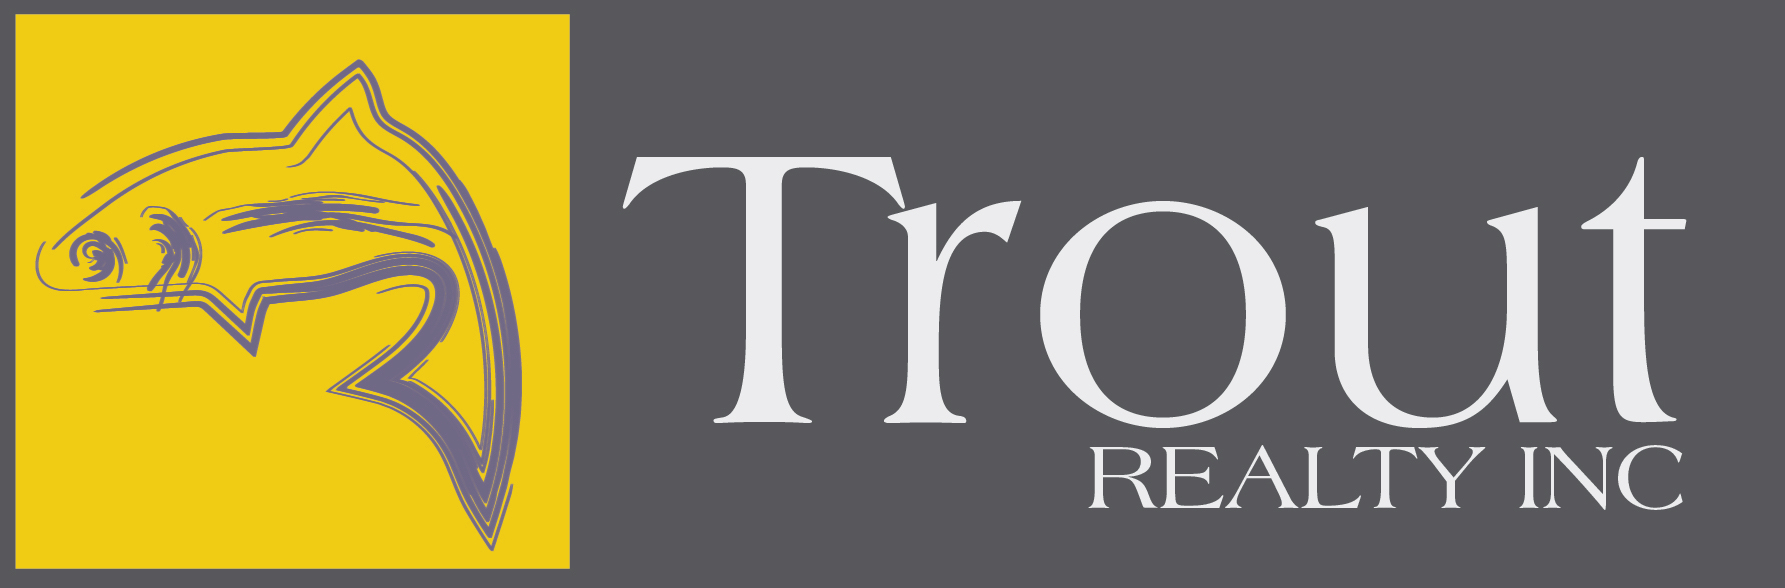 Trout Realty, Inc.